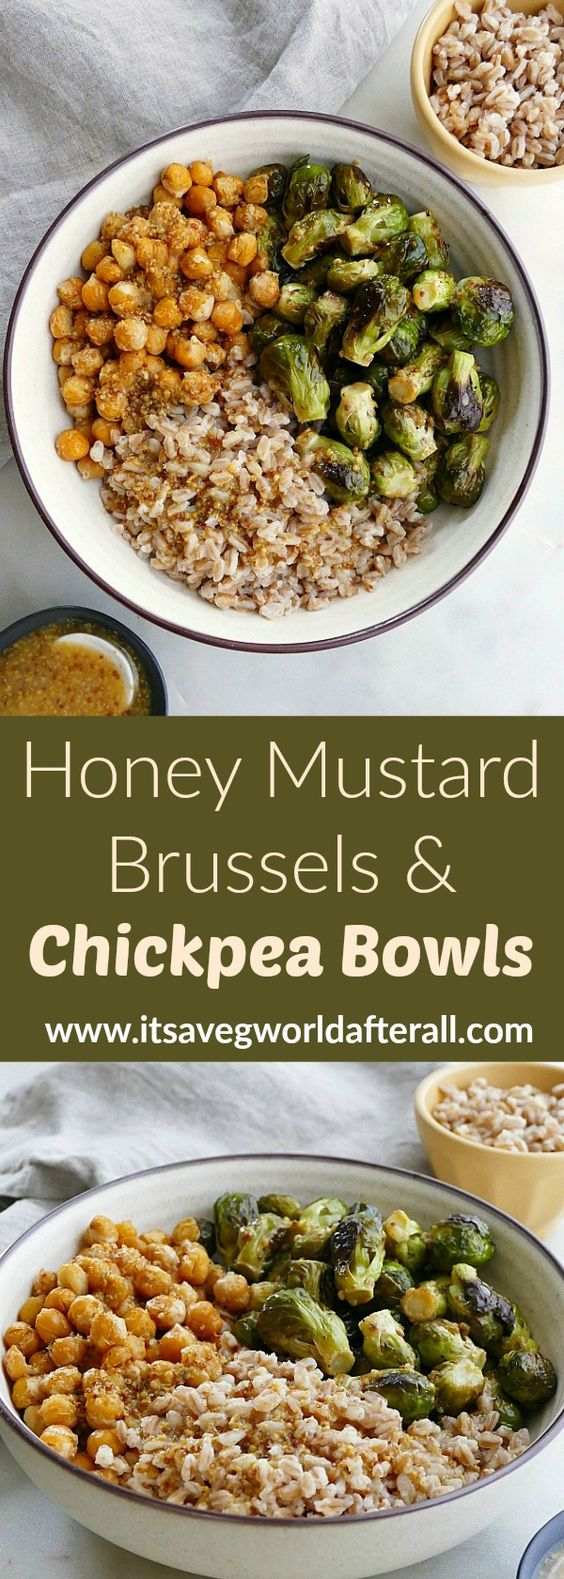 Honey Mustard Brussels Sprouts and Chickpea Bowls